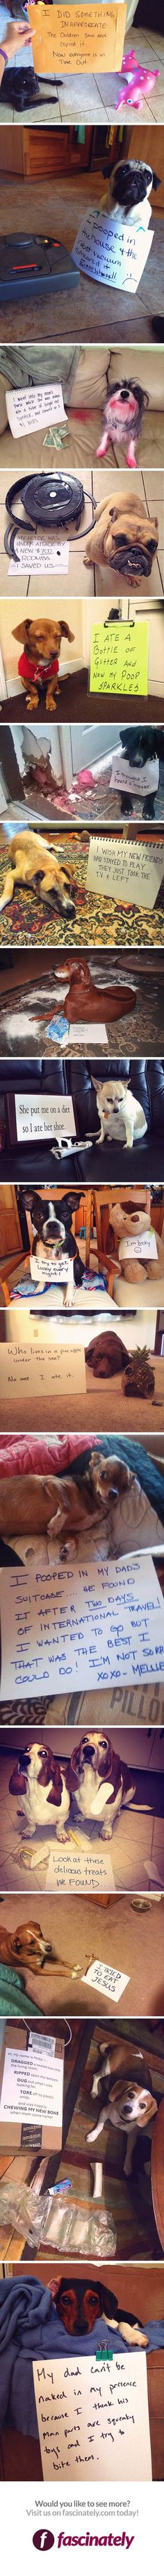 Meet the Naughtiest Dogs of 2014 – these cracked me up! It could partially be my lack of sleep right now but please enjoy (sorry for the few inappropriate ones) #catsfunnylaughingsohard